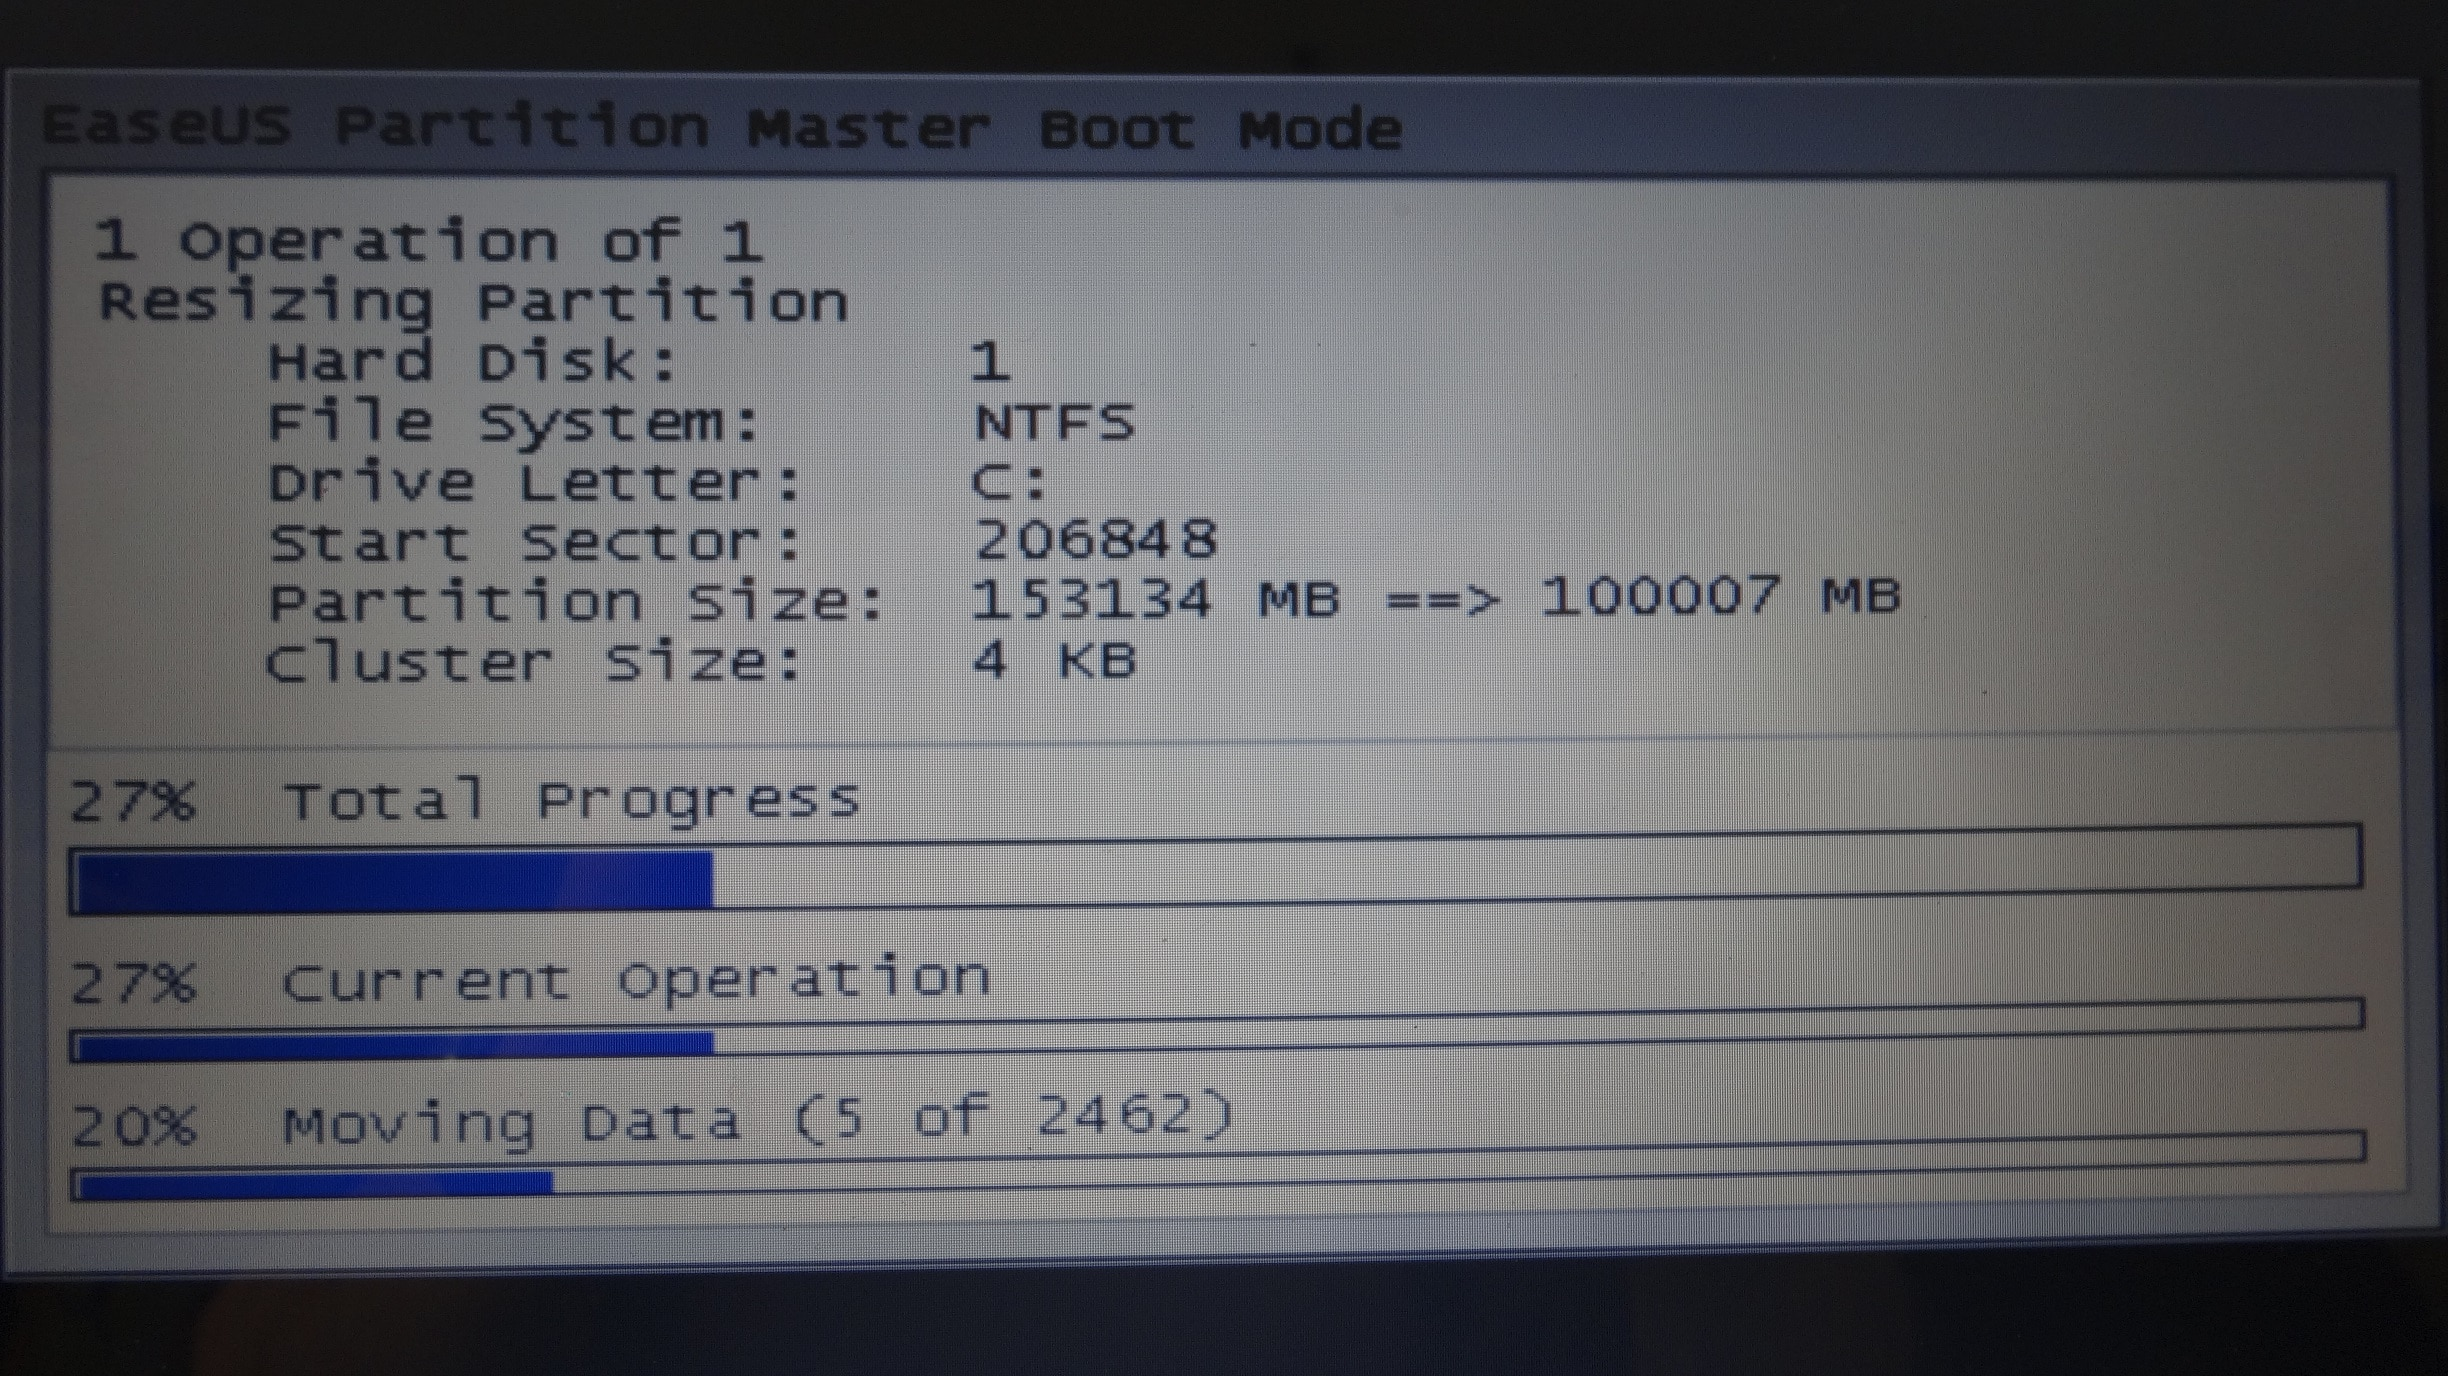 tutoriel partition master MODIF AVEC REDEMARRAGE 2